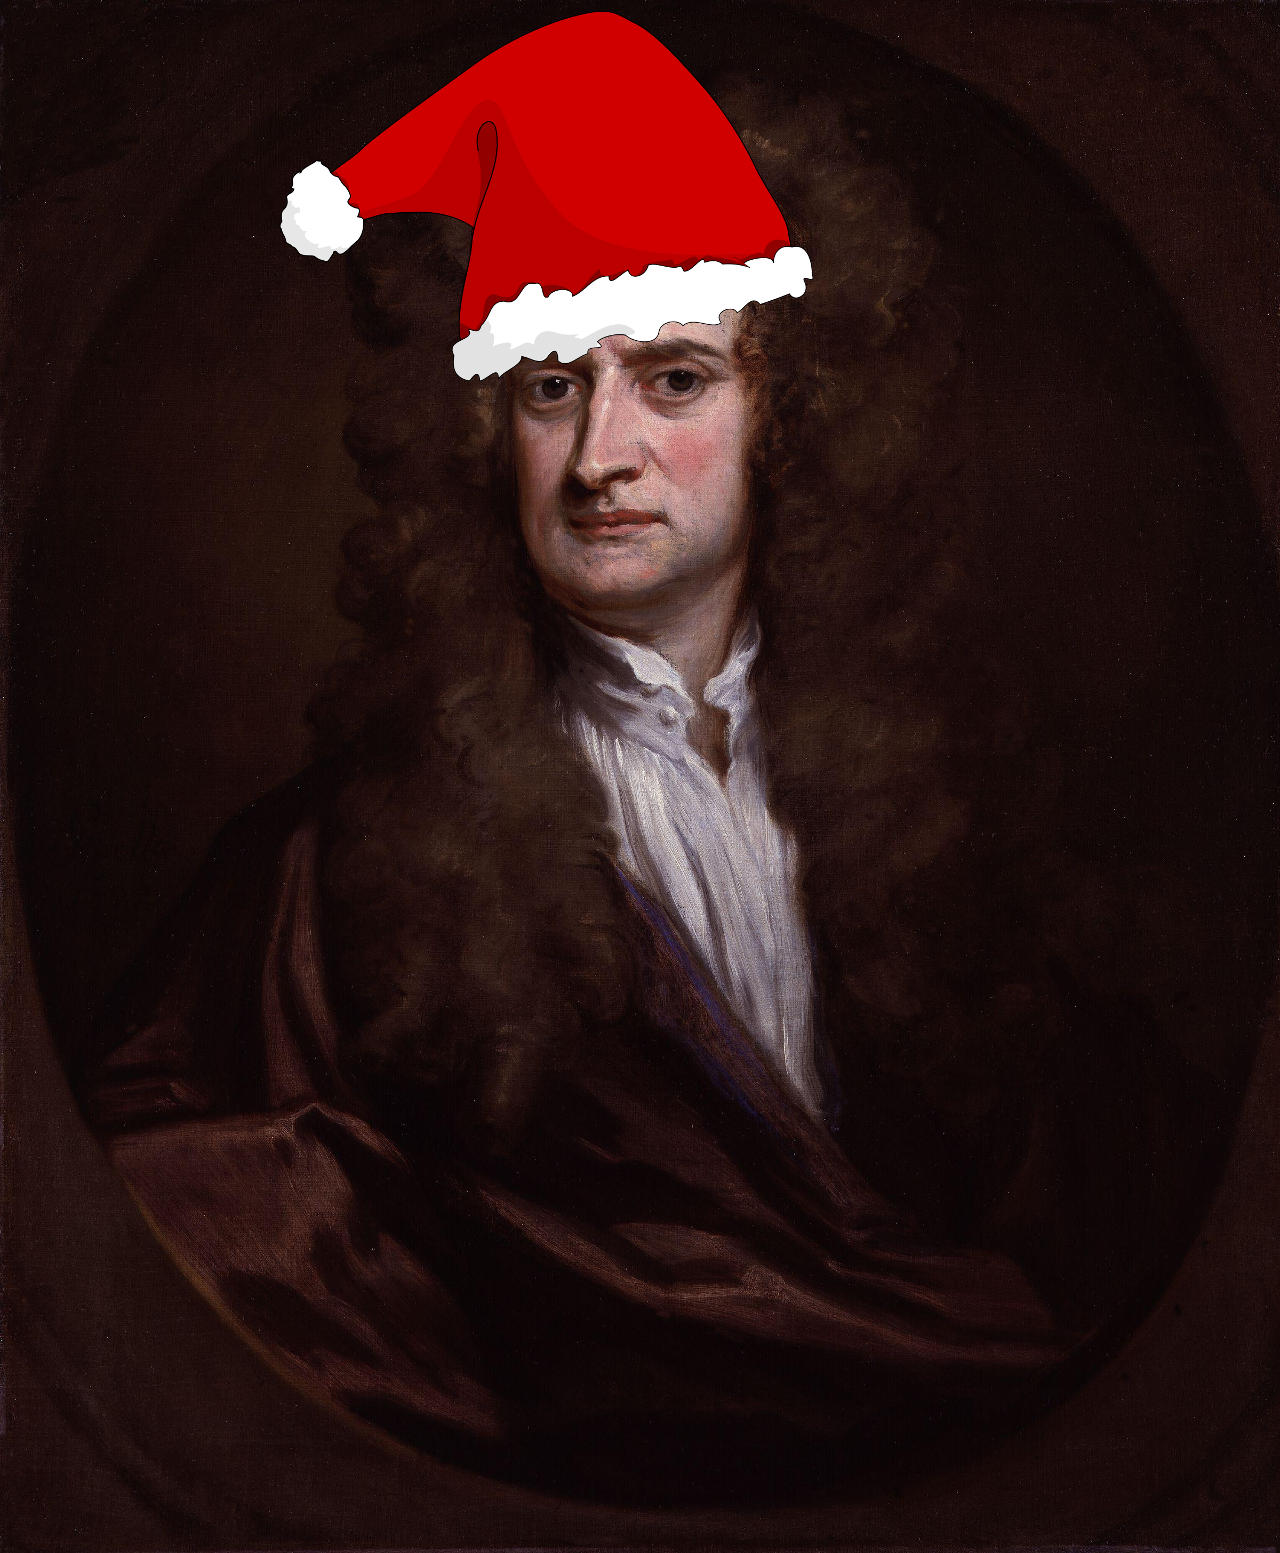 Sir Isaac Newton, with hat.